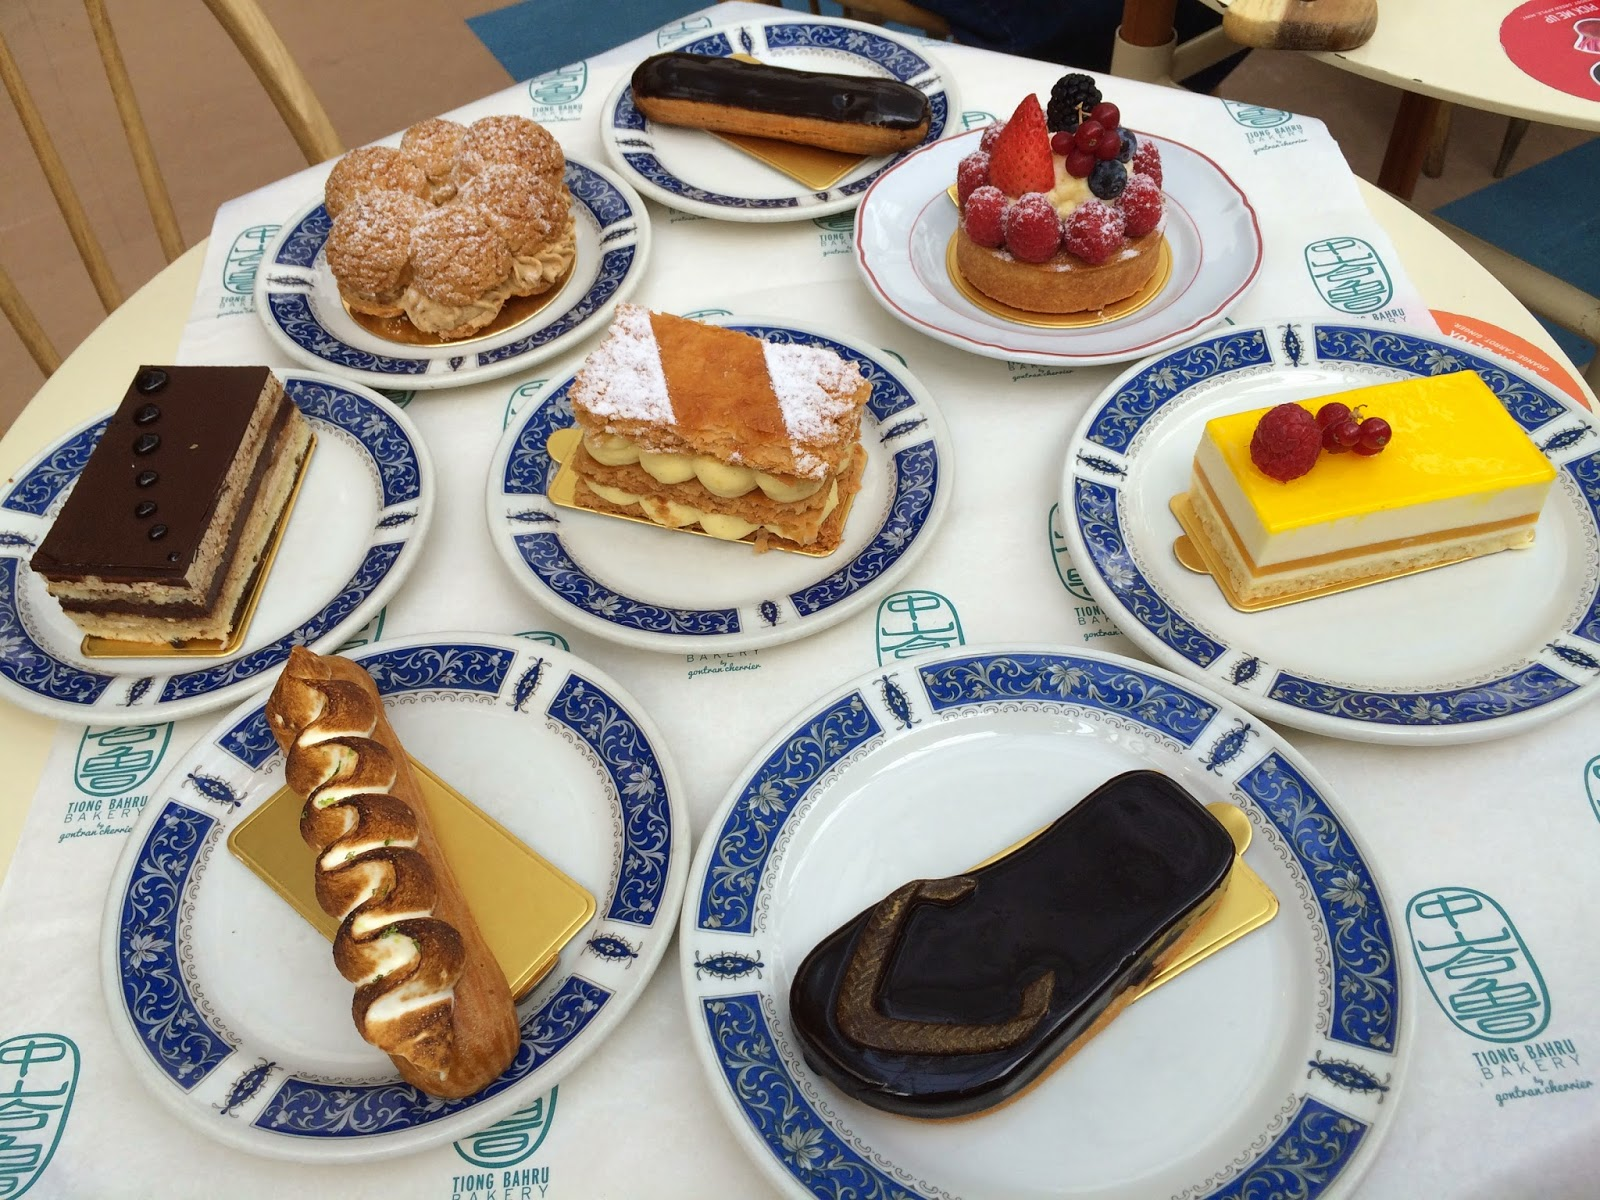 Tiong Bahru Bakery Reimagined Classic French Desserts